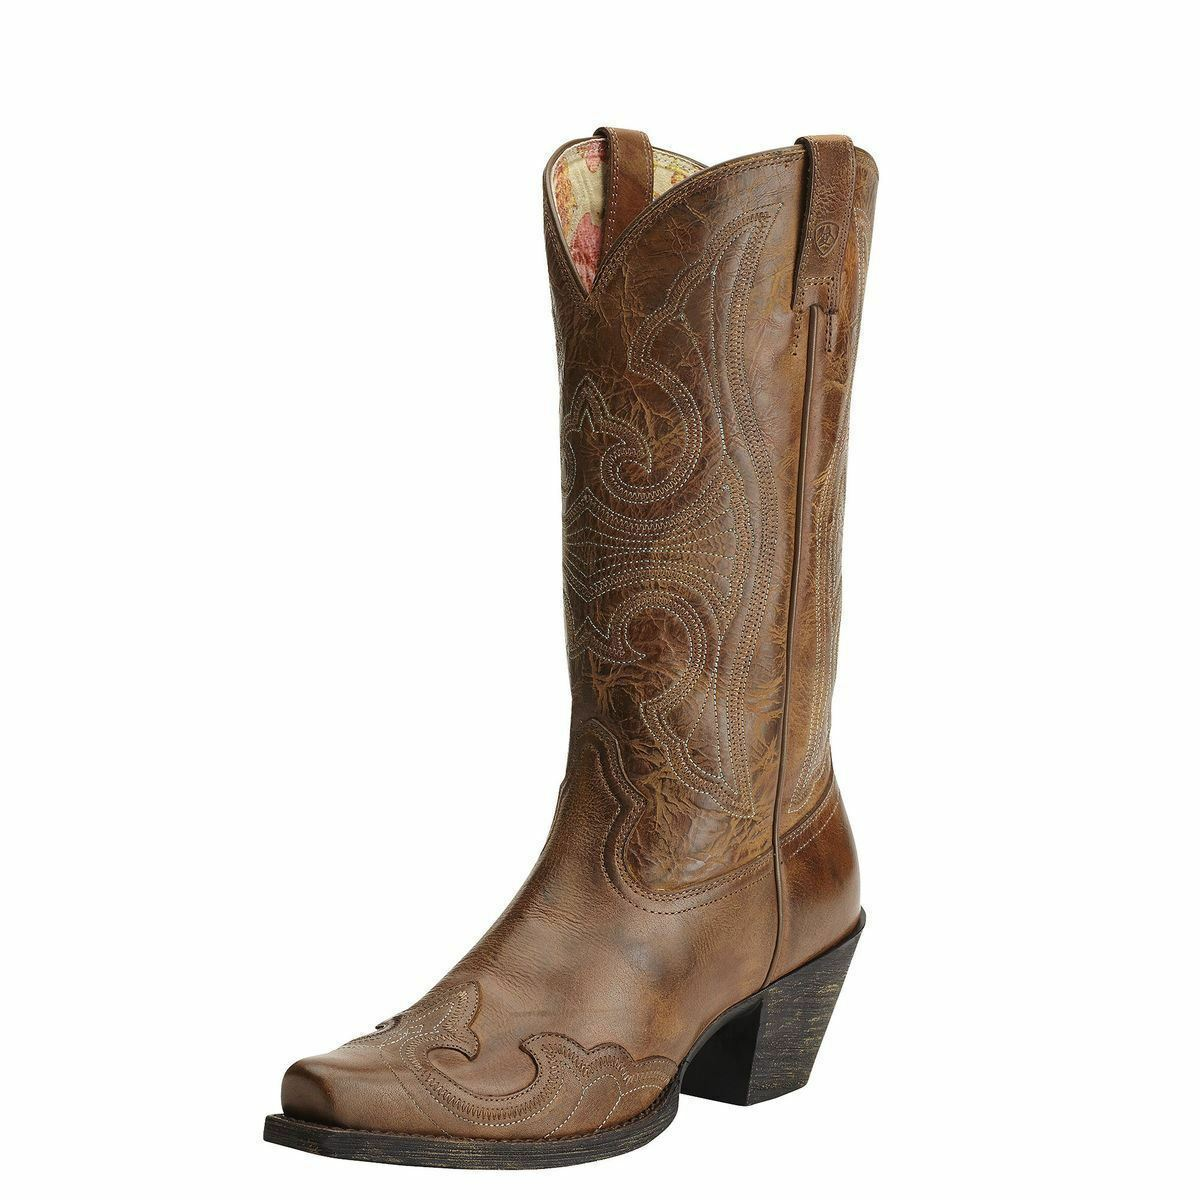 LADIES ARIAT WESTERN BOOTS ROUND UP WINGTIP IN SANDSTORM 10015290